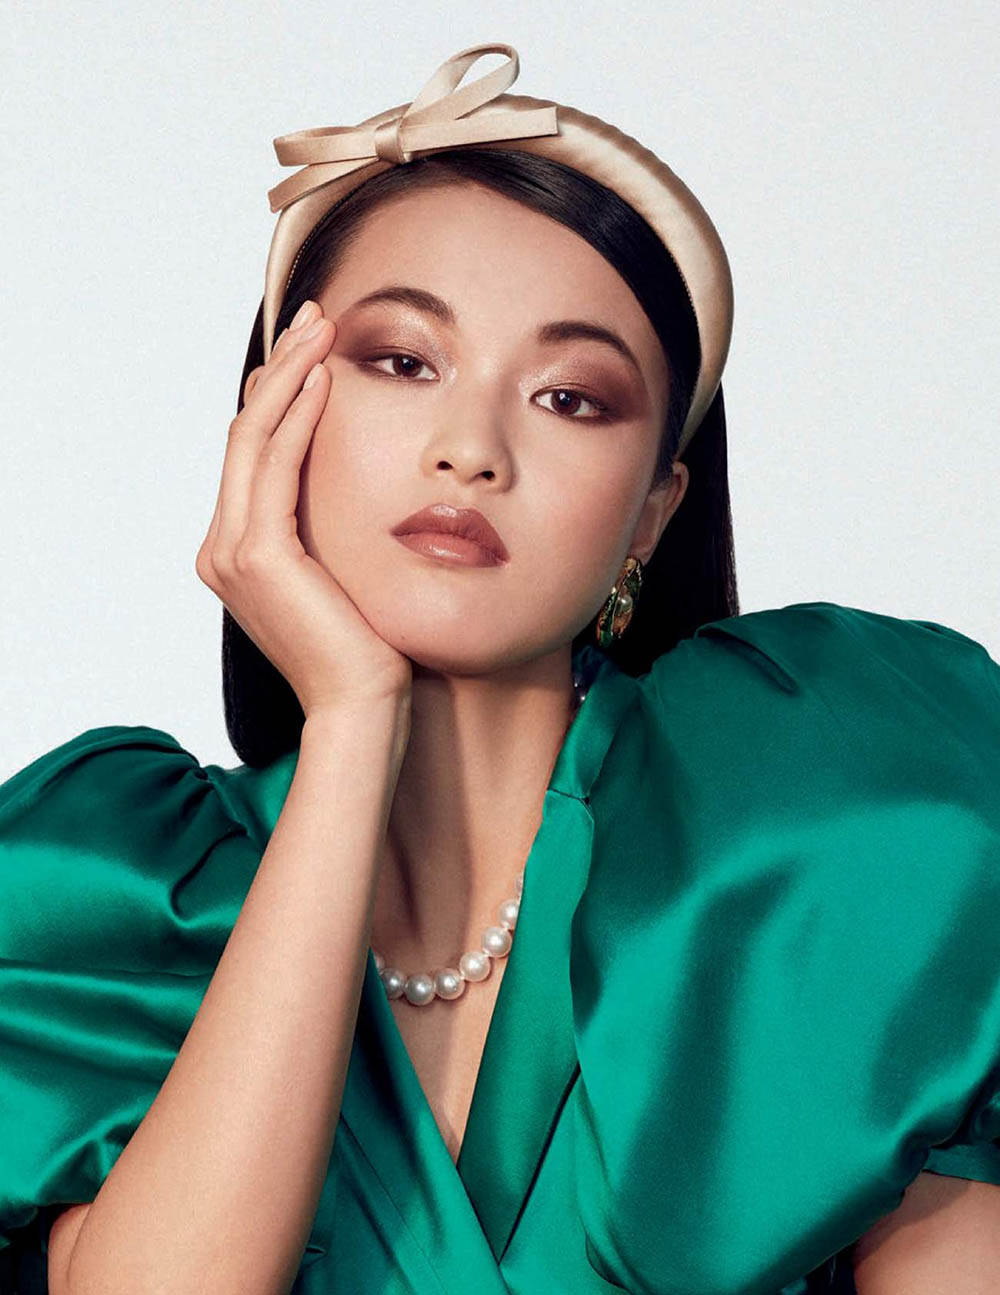 Xin Xie by Felix Valiente for Vogue Spain May 2019